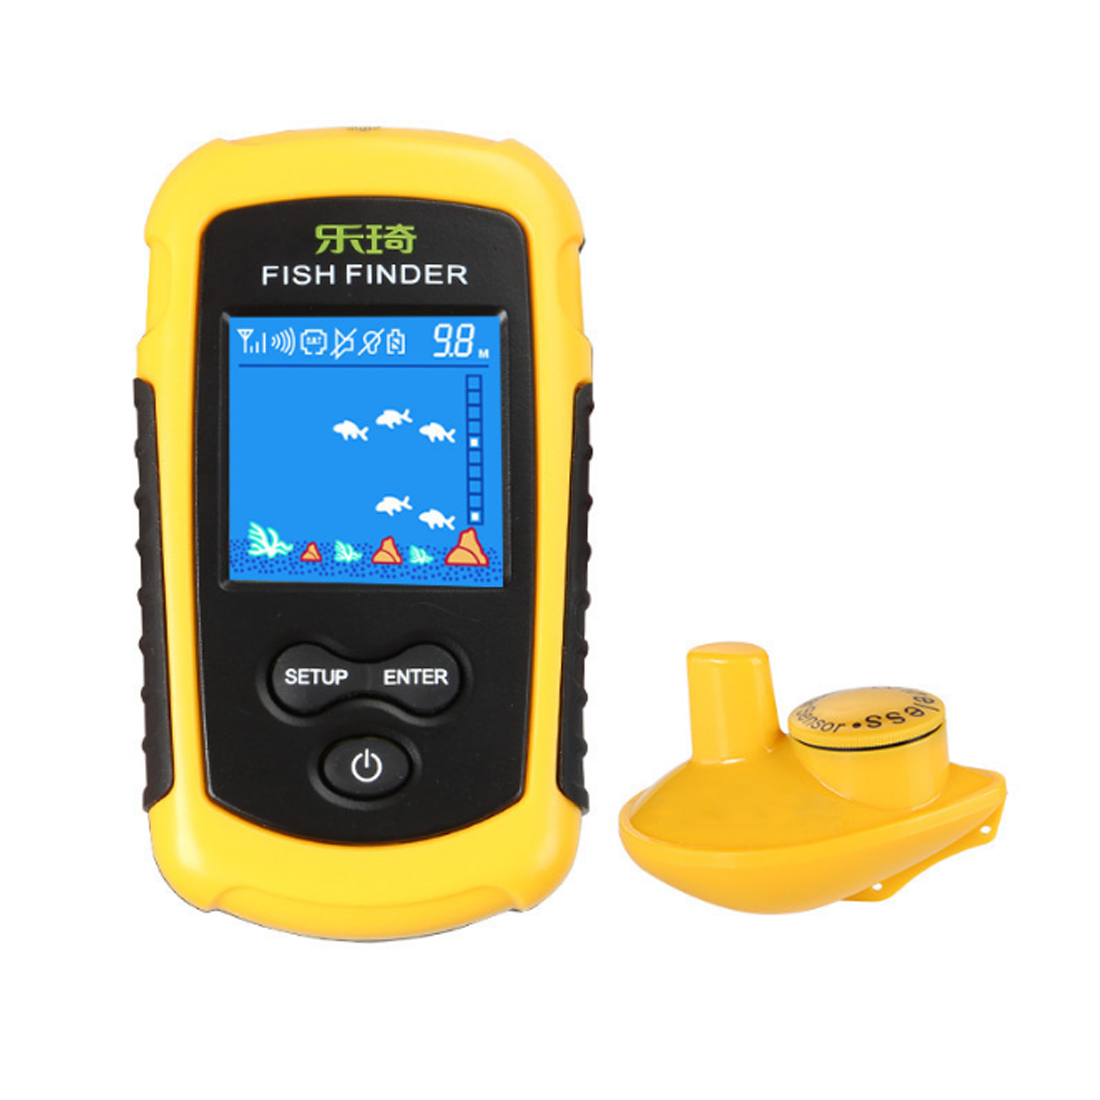 Free Shipping Portable Wireless Sonar Fish Finder 125 KHZ For Fishing 100M Sonar Portable LCD Fish Finders Fishing Locator Kit free shipping jabo 2bl 20ah 2 4ghz sonar fish finder bait boat for fishing tools with sonar fish finder